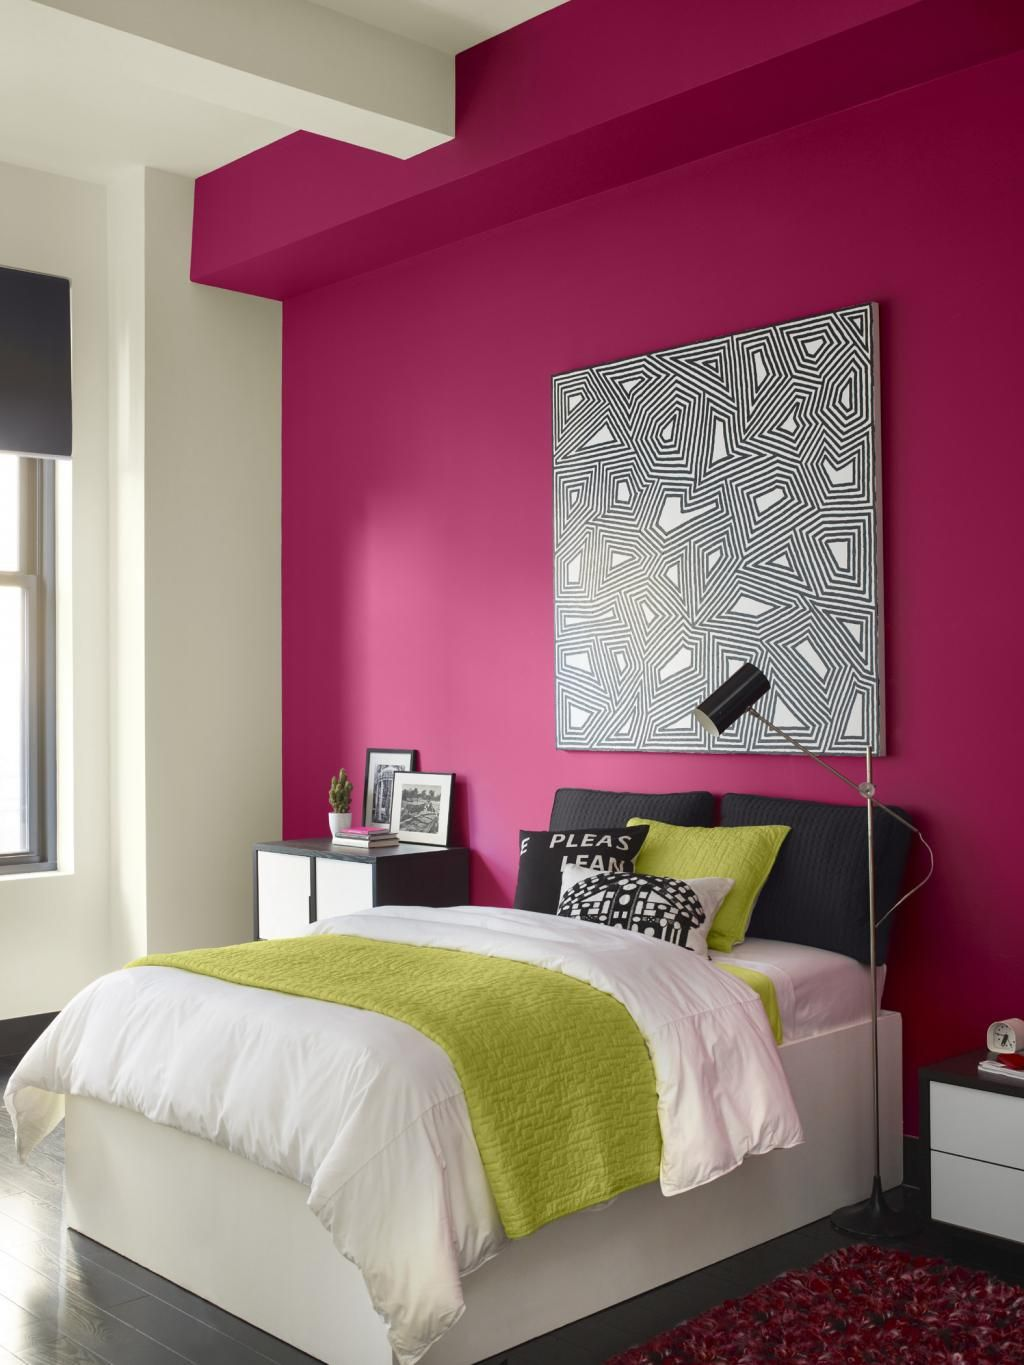 Interior Design Bedroom Color Combination With Bright Pink White Tapja Sunset Coloured